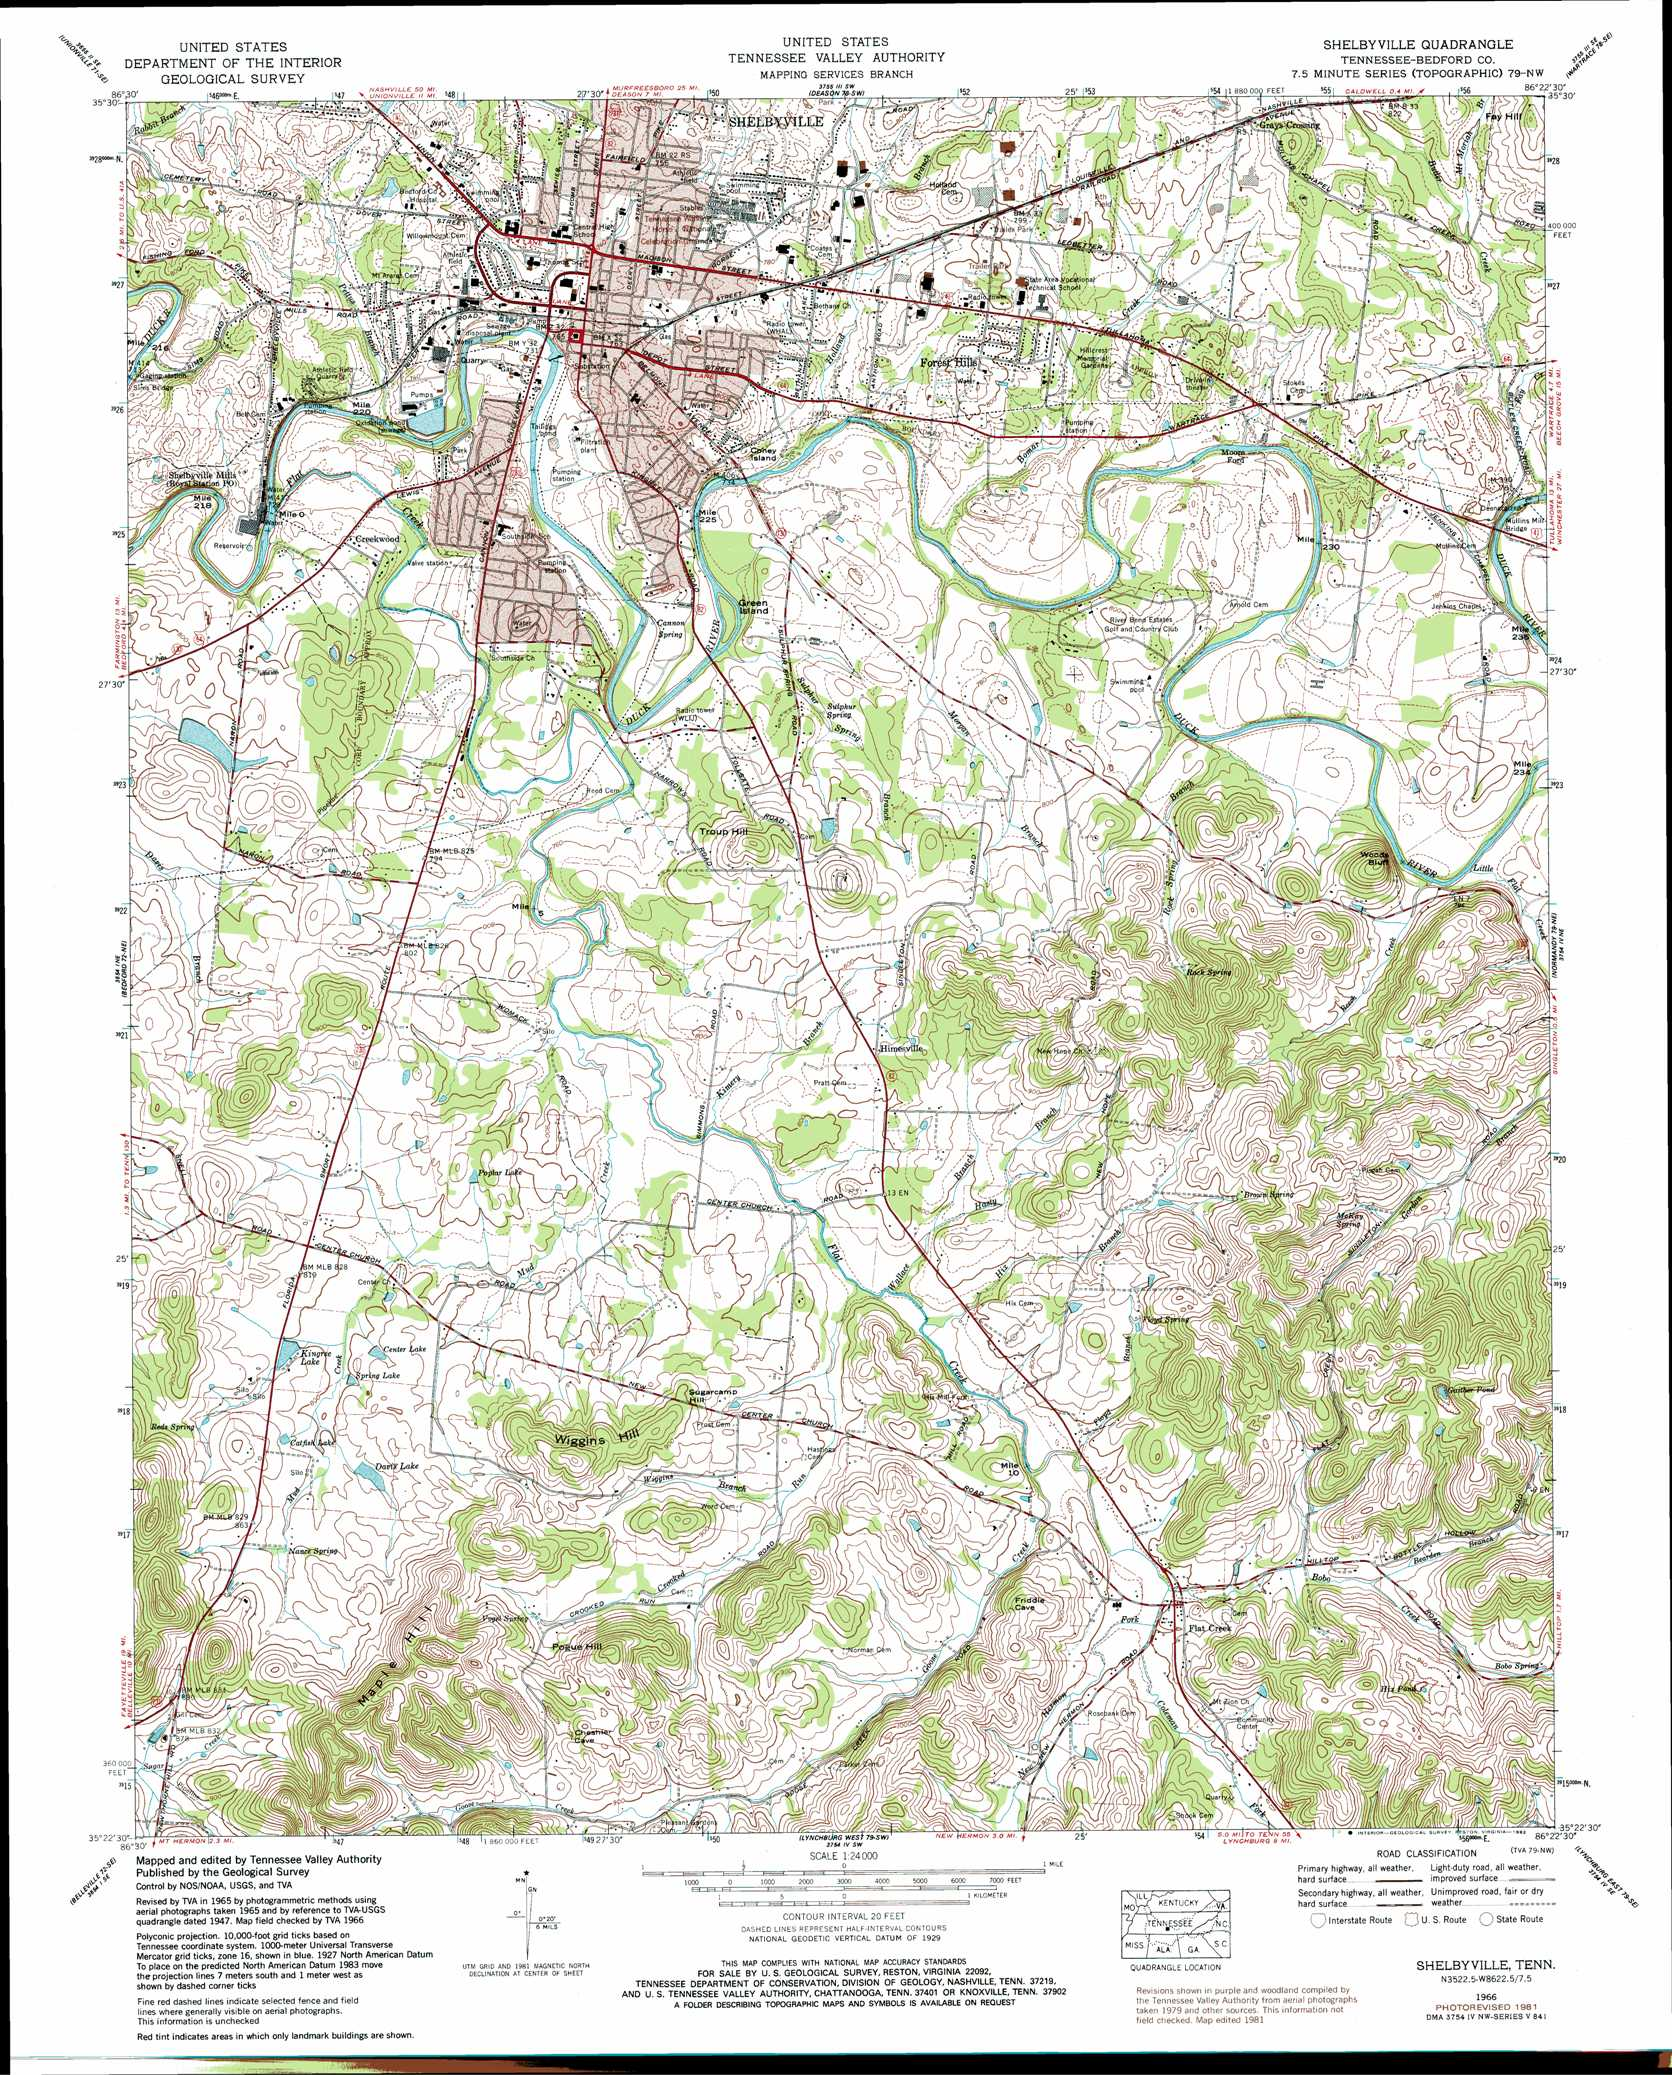 Shelbyville topographic map, TN - USGS Topo Quad 35086d4